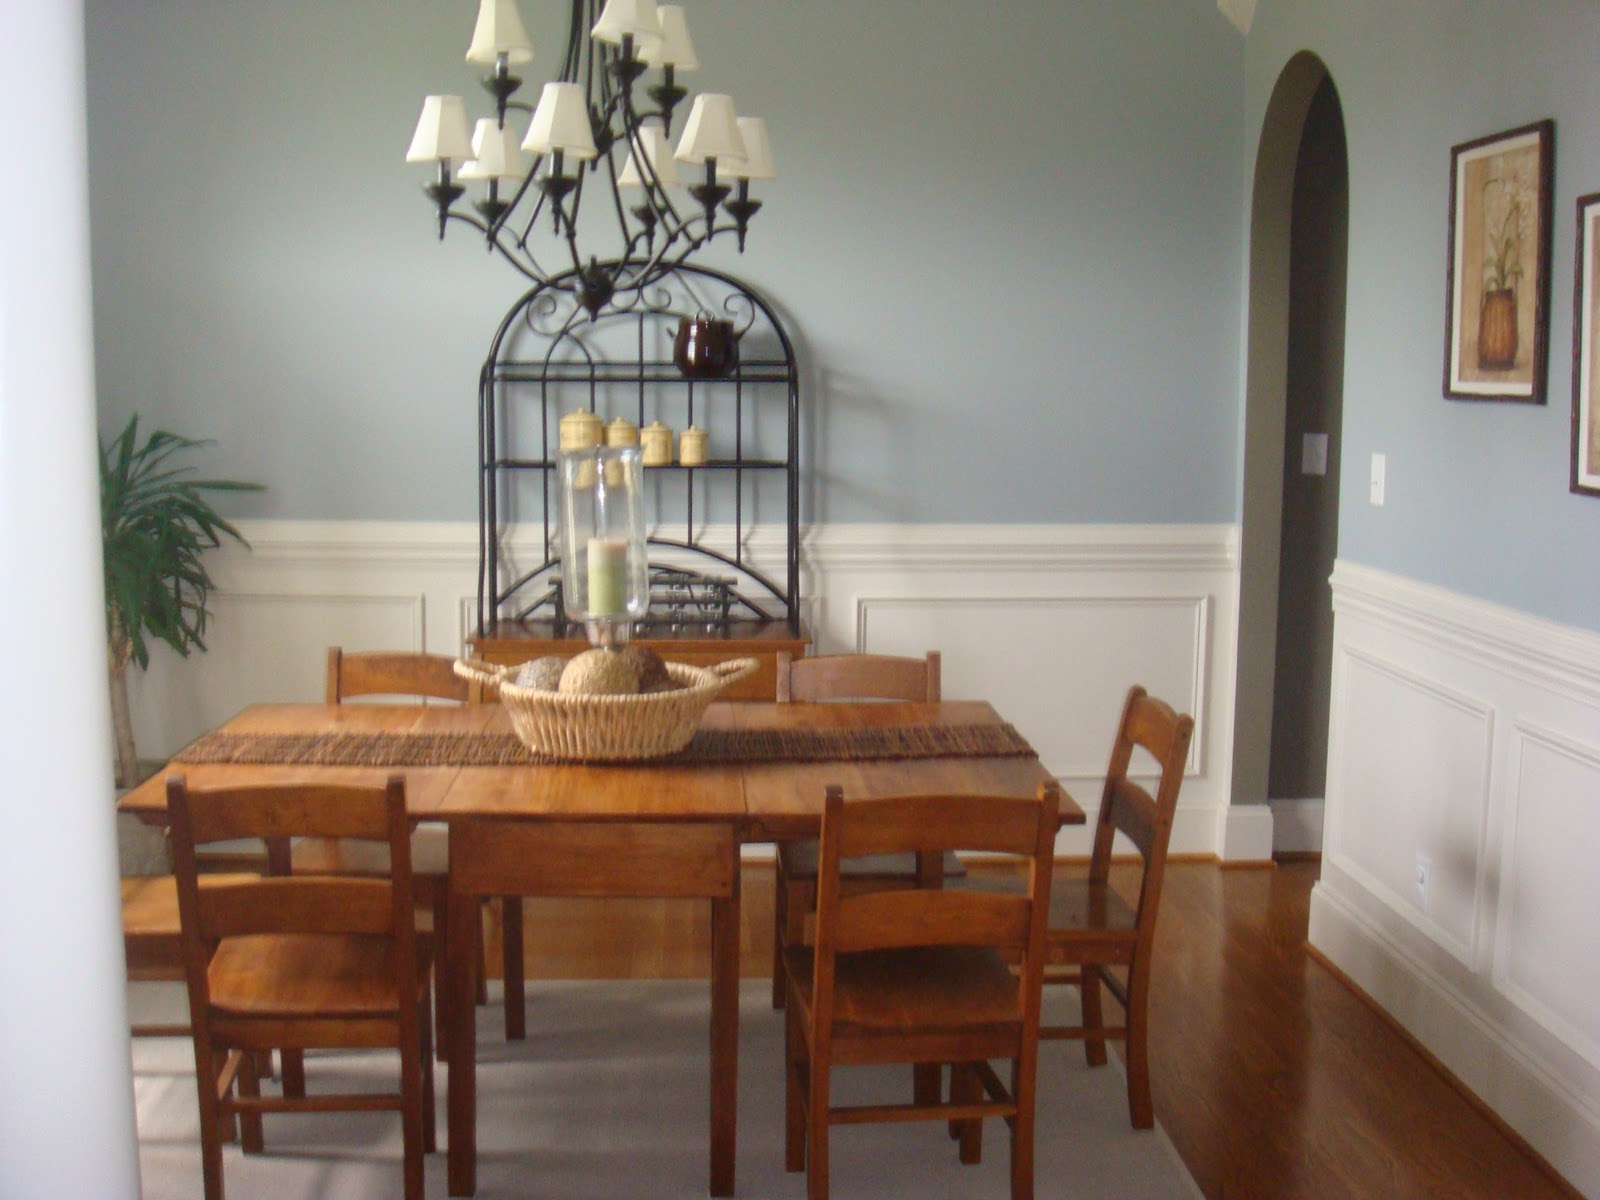 The nest builder favorite paint colors party for Best color to paint a dining room